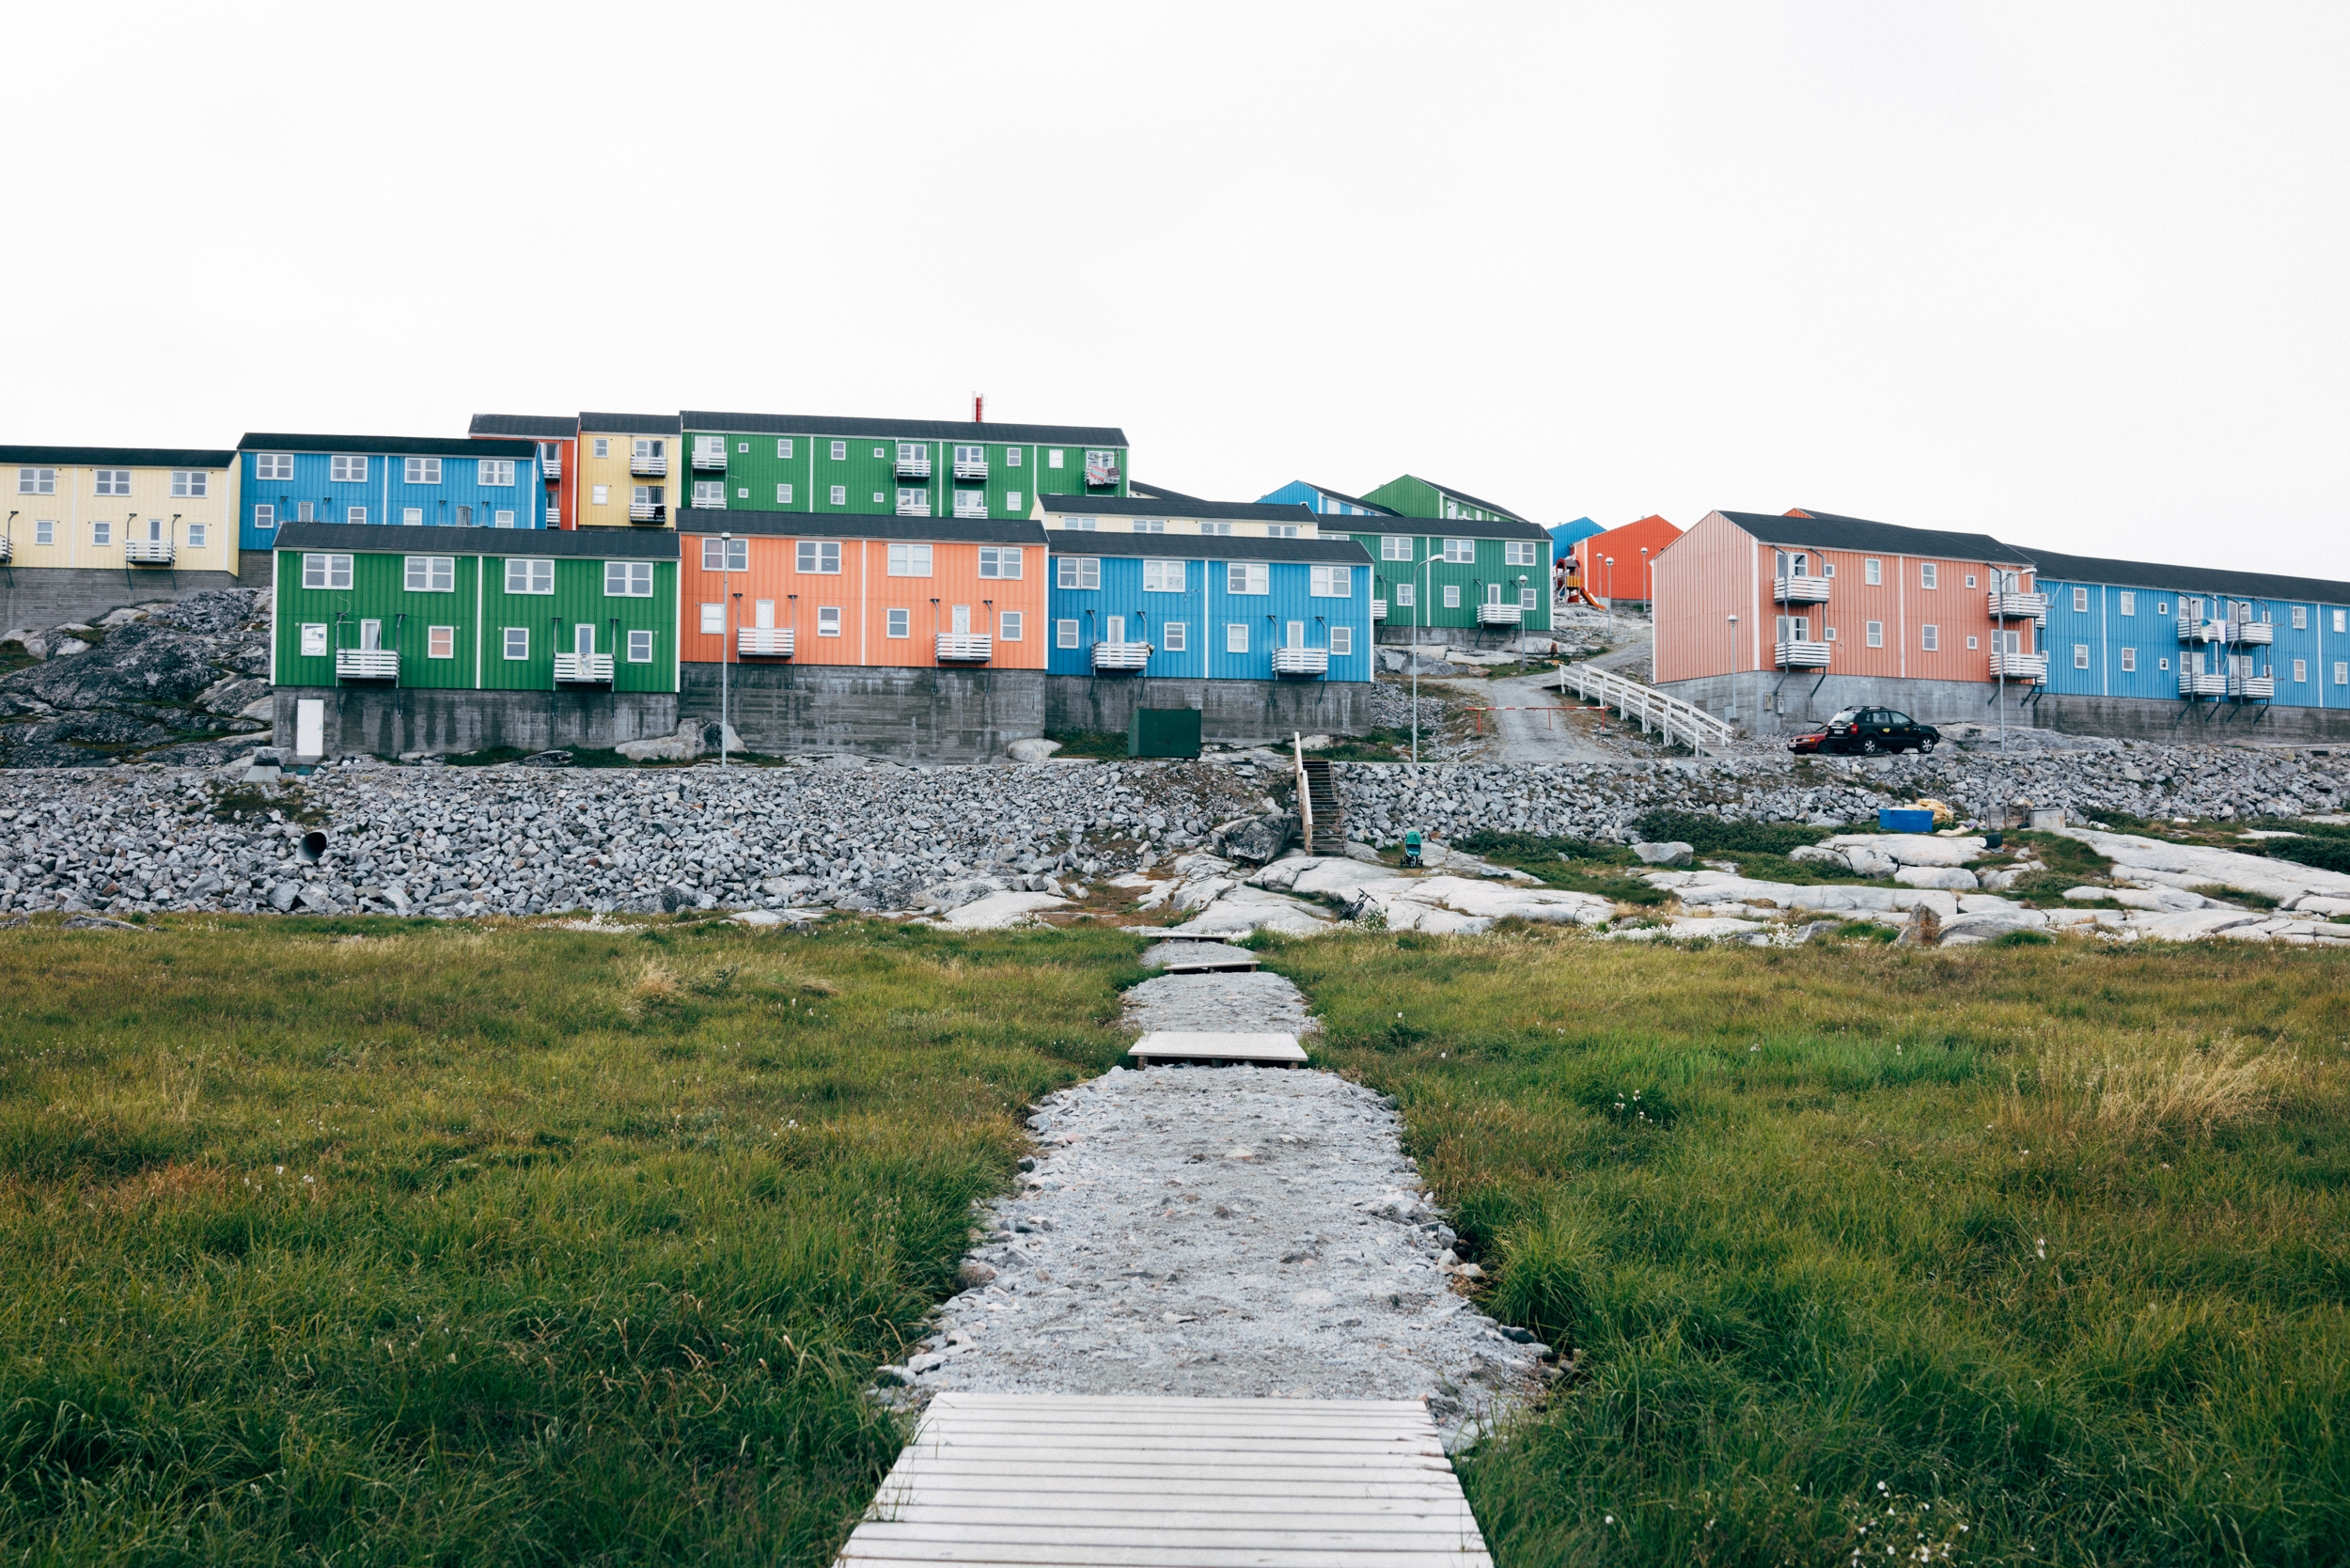 The apartments where we stayed on our arrival in Ilulissat.